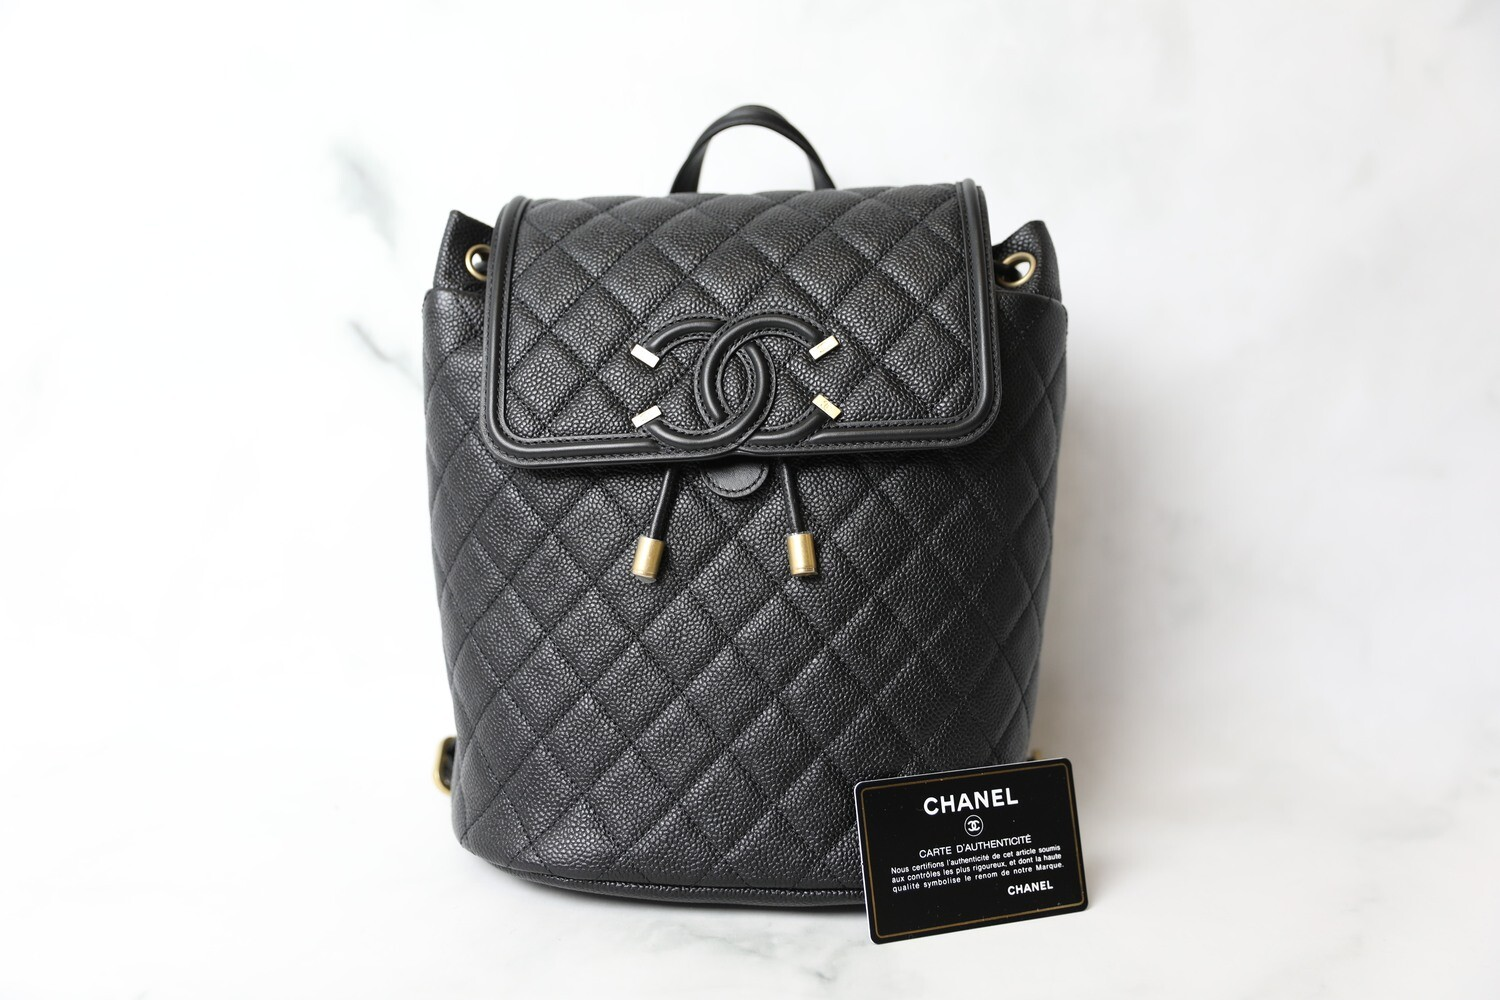 Chanel Filigree Backpack Small, Black Caviar with Gold Hardware, New in Dustbag WA001